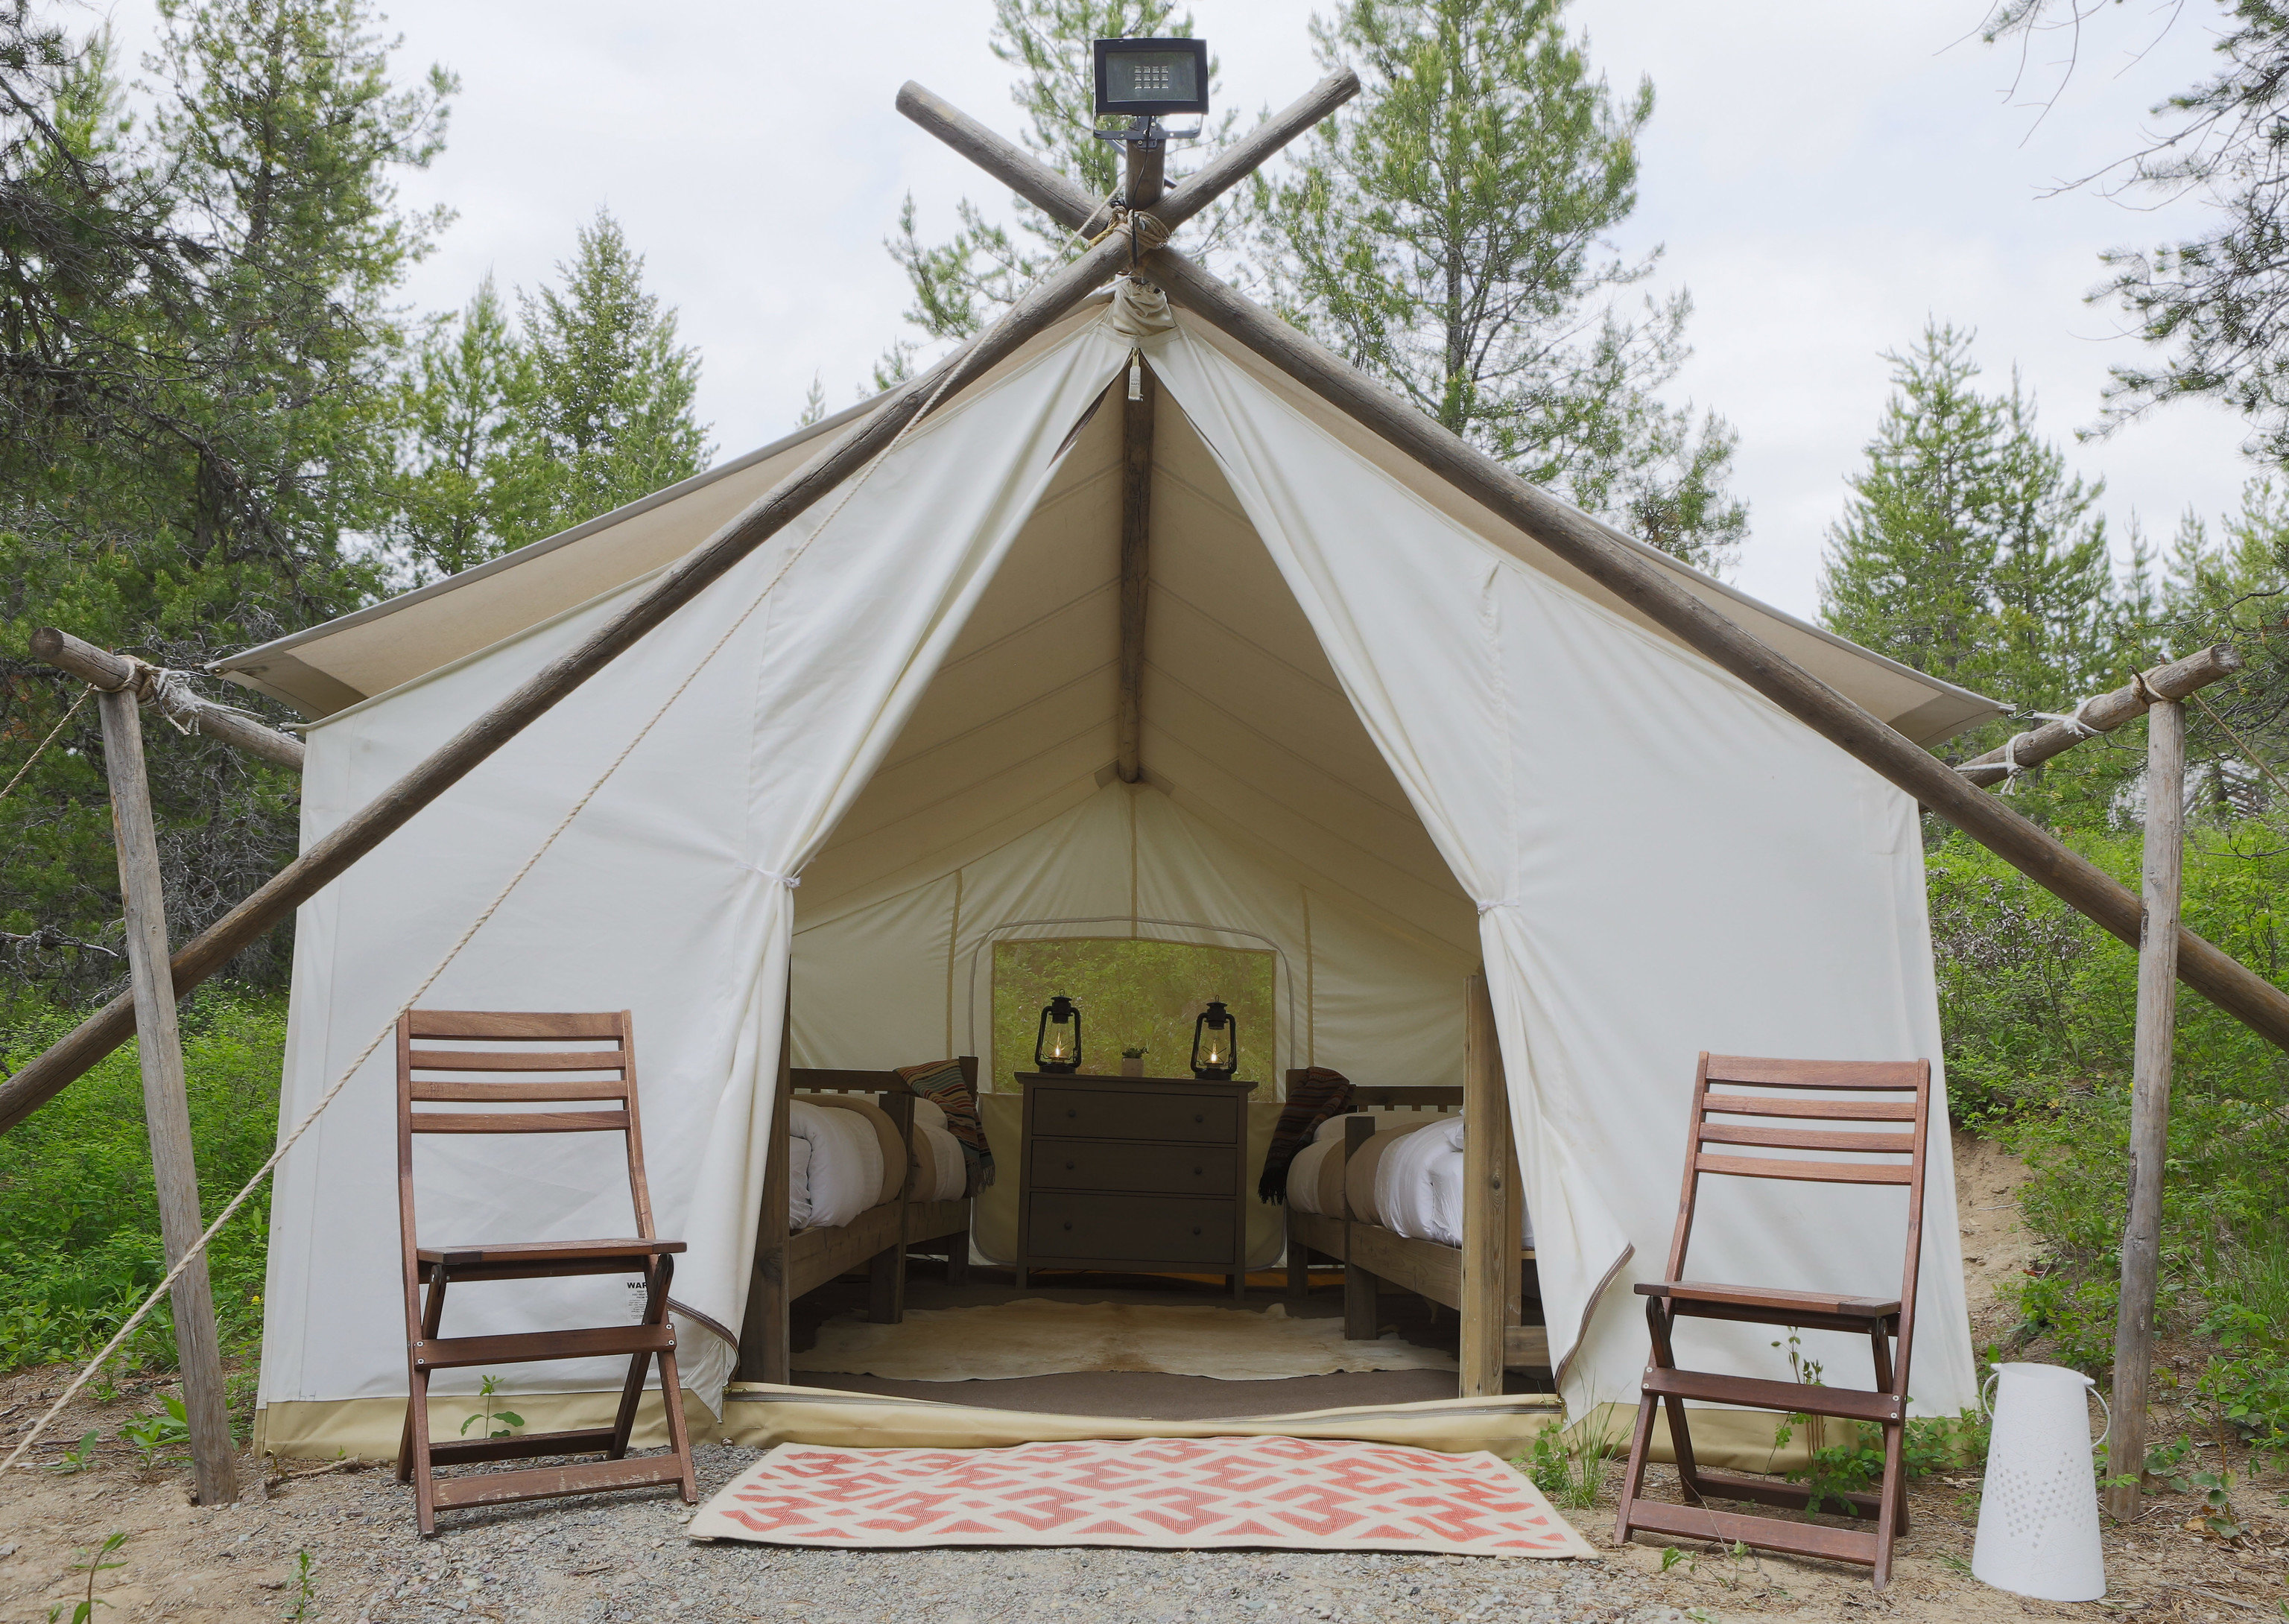 Glamping Outdoors + Adventure Weekend Getaways tree sky outdoor tent outdoor object camp